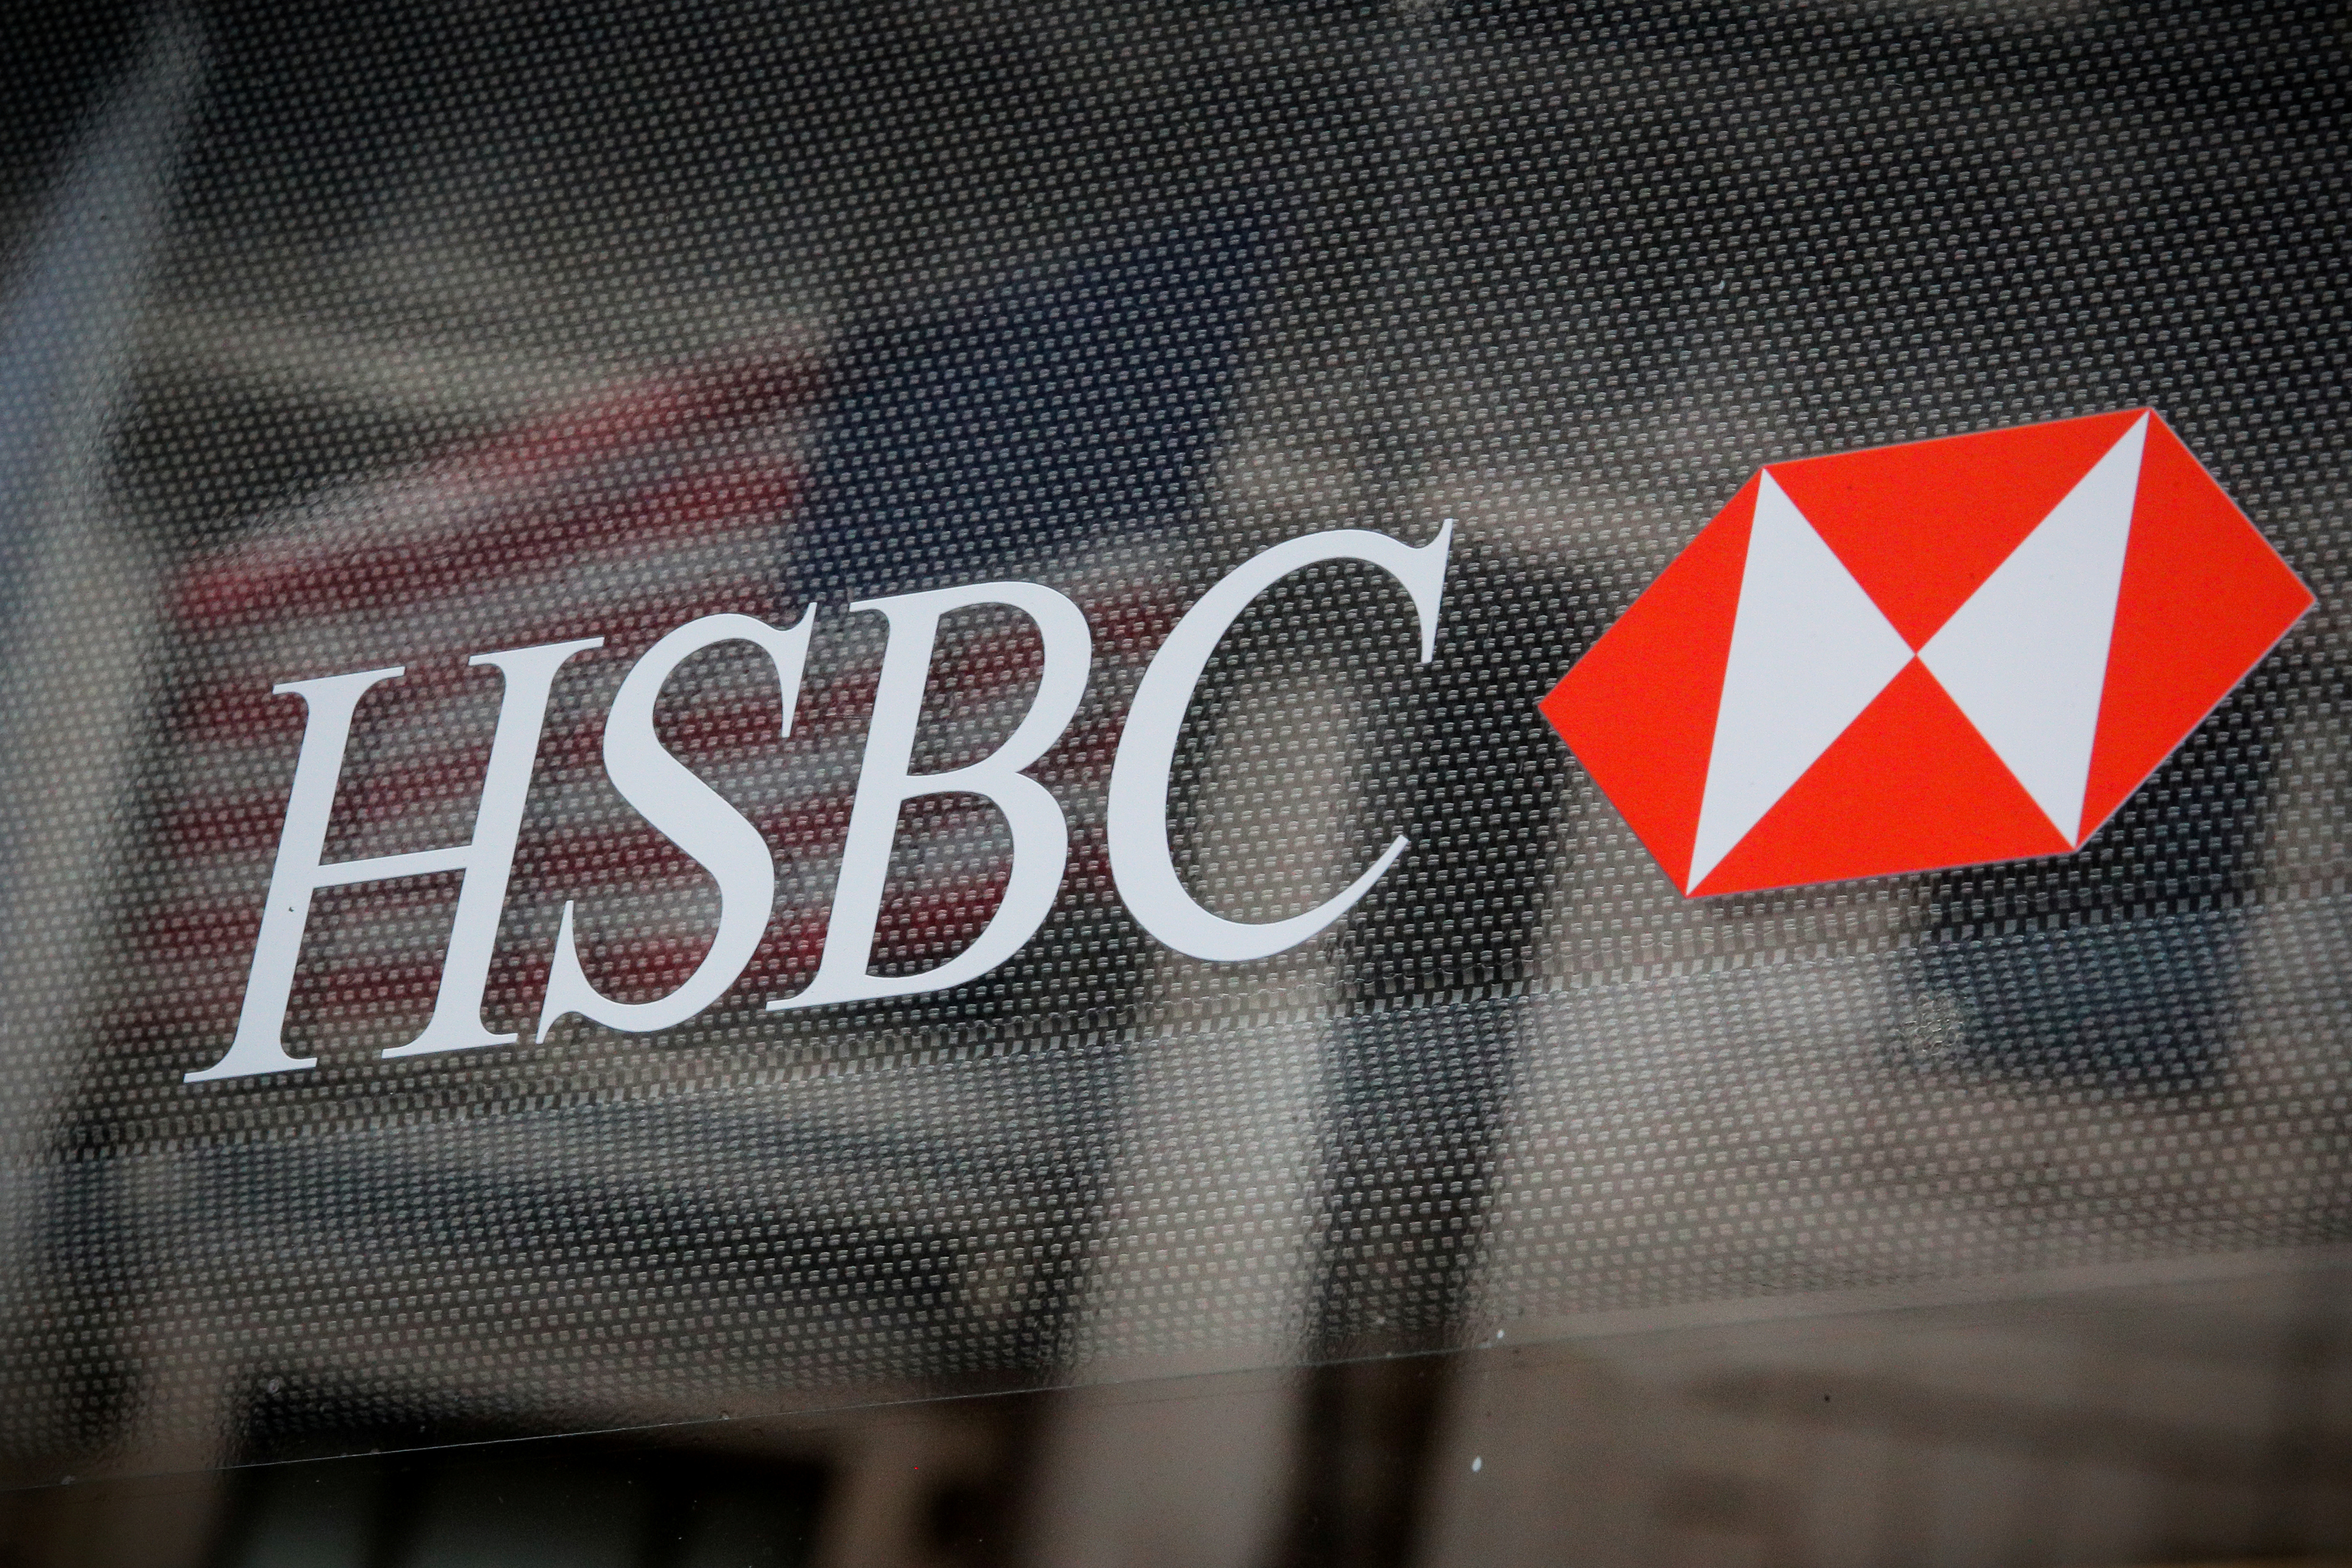 HSBC logo is seen on a branch bank in the financial district in New York, U.S., August 7, 2019. REUTERS/Brendan McDermid